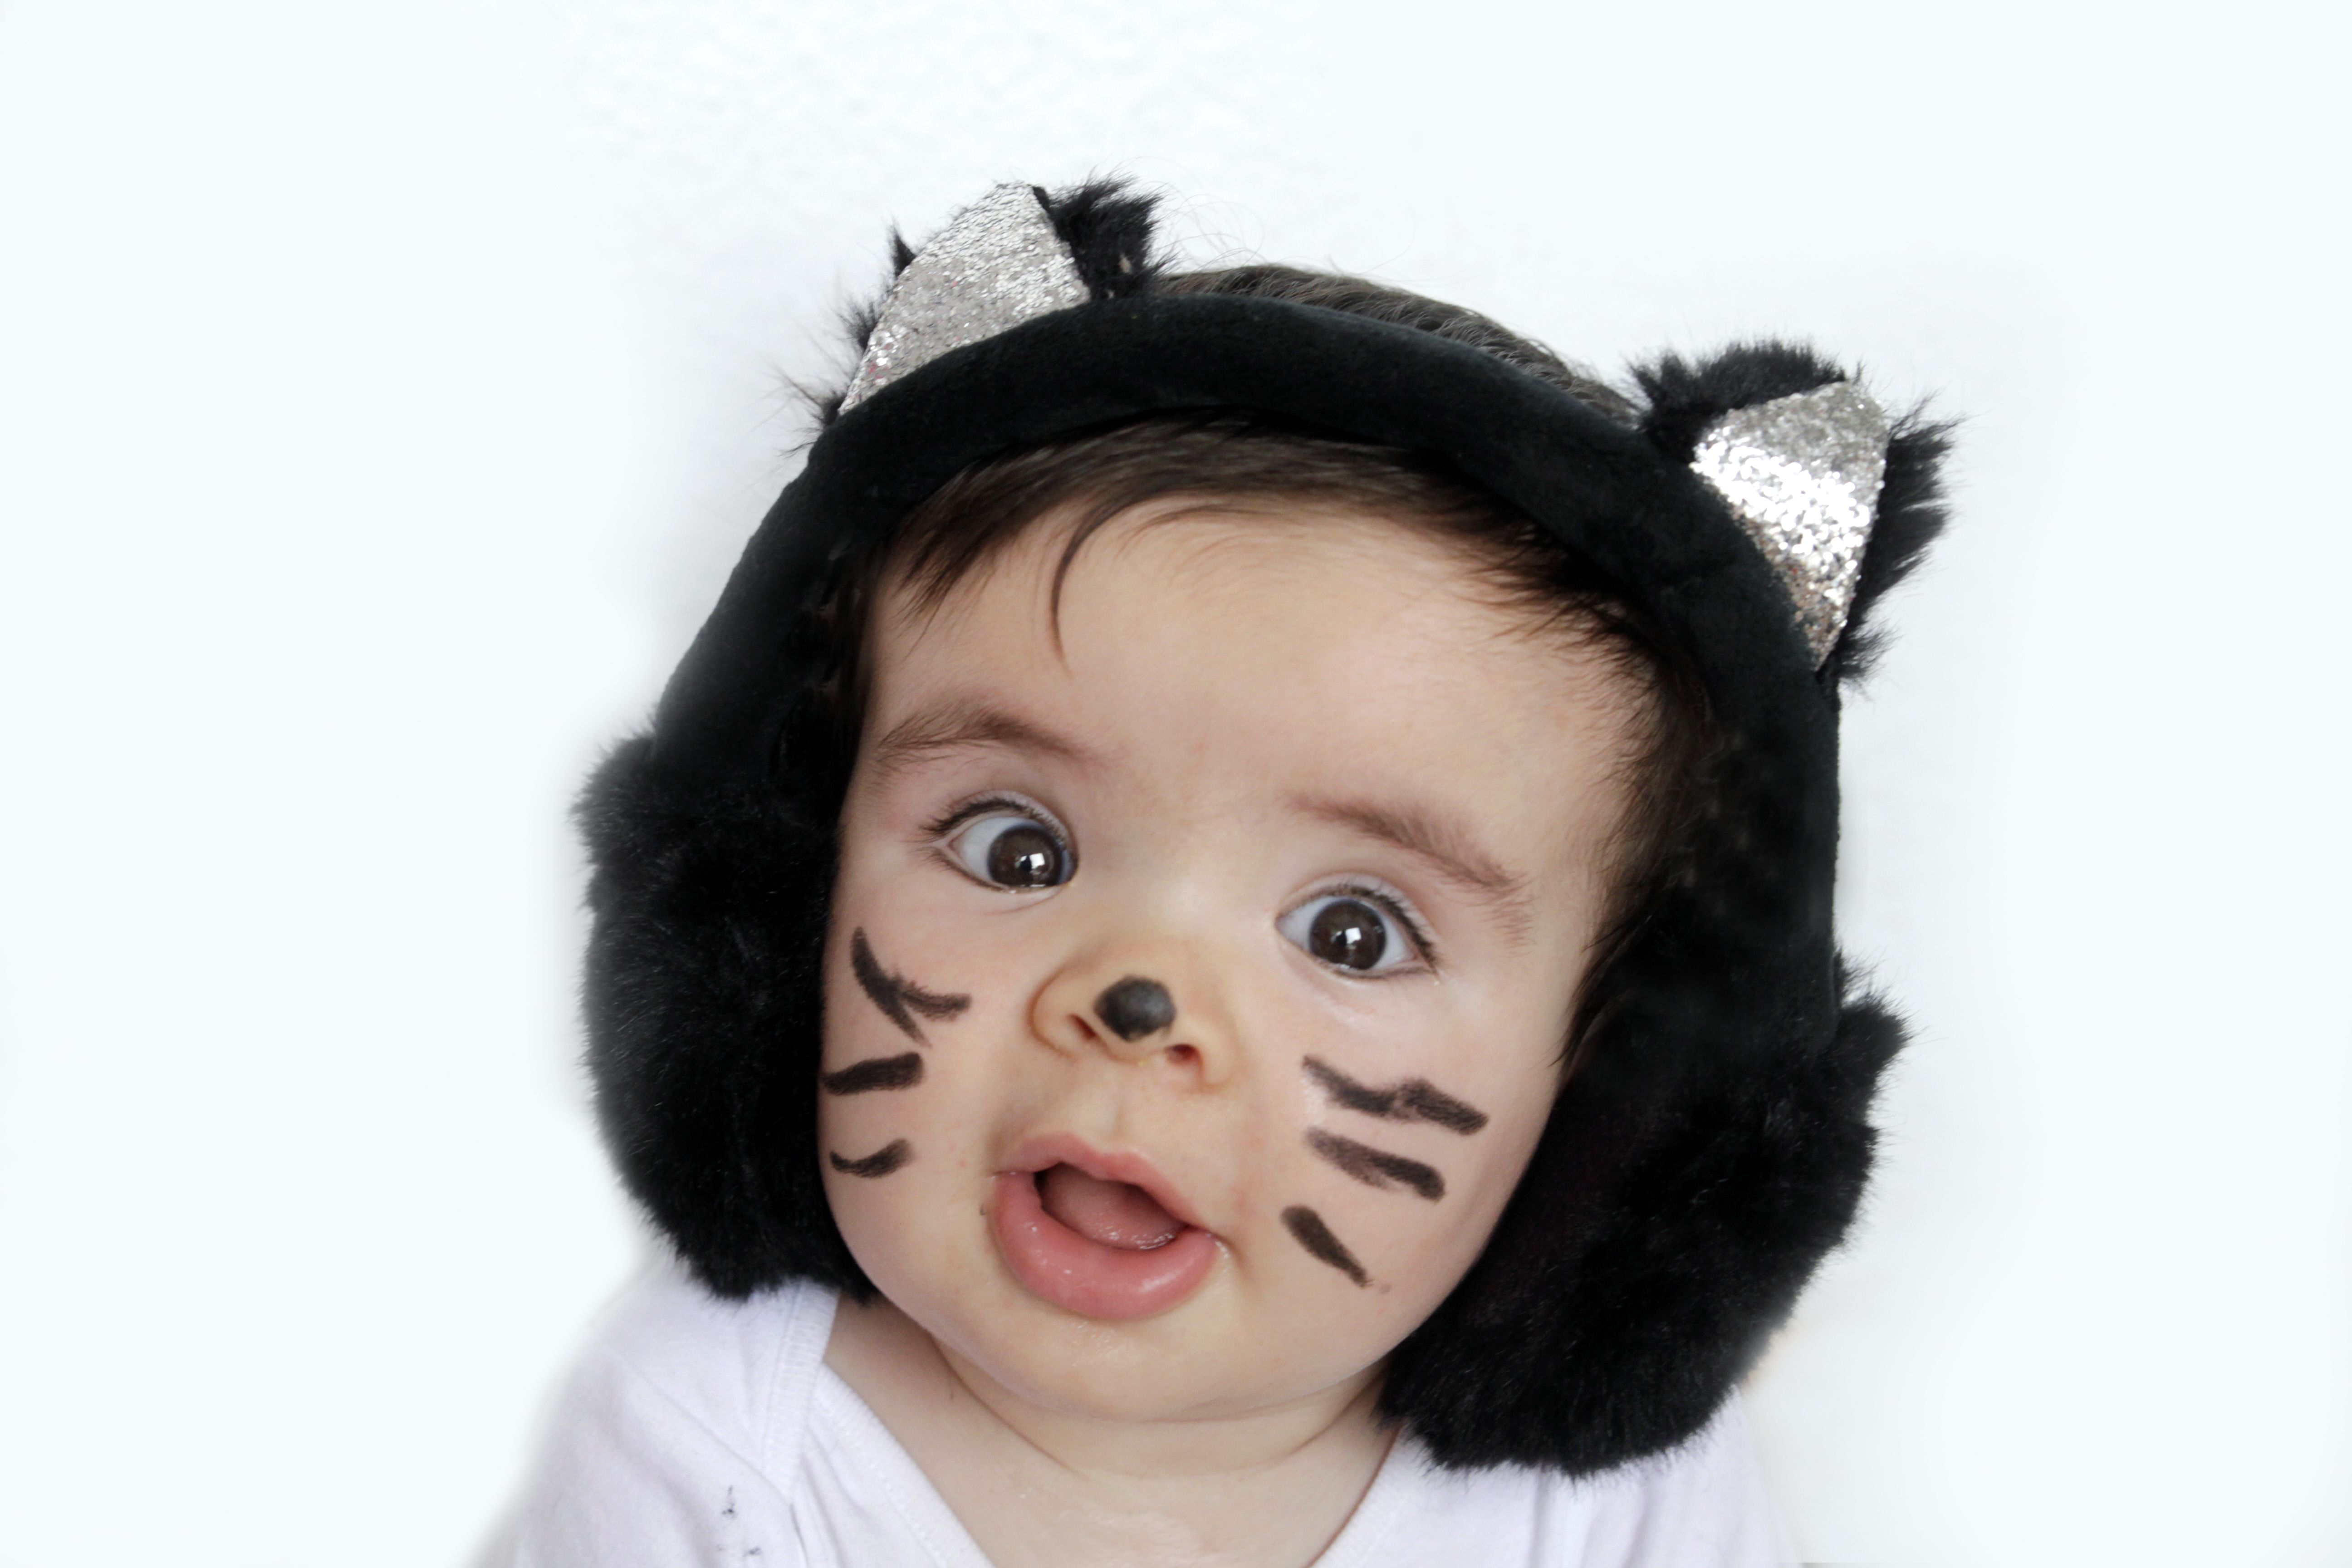 32 cute baby halloween costumes for boys & girls - diy costume ideas